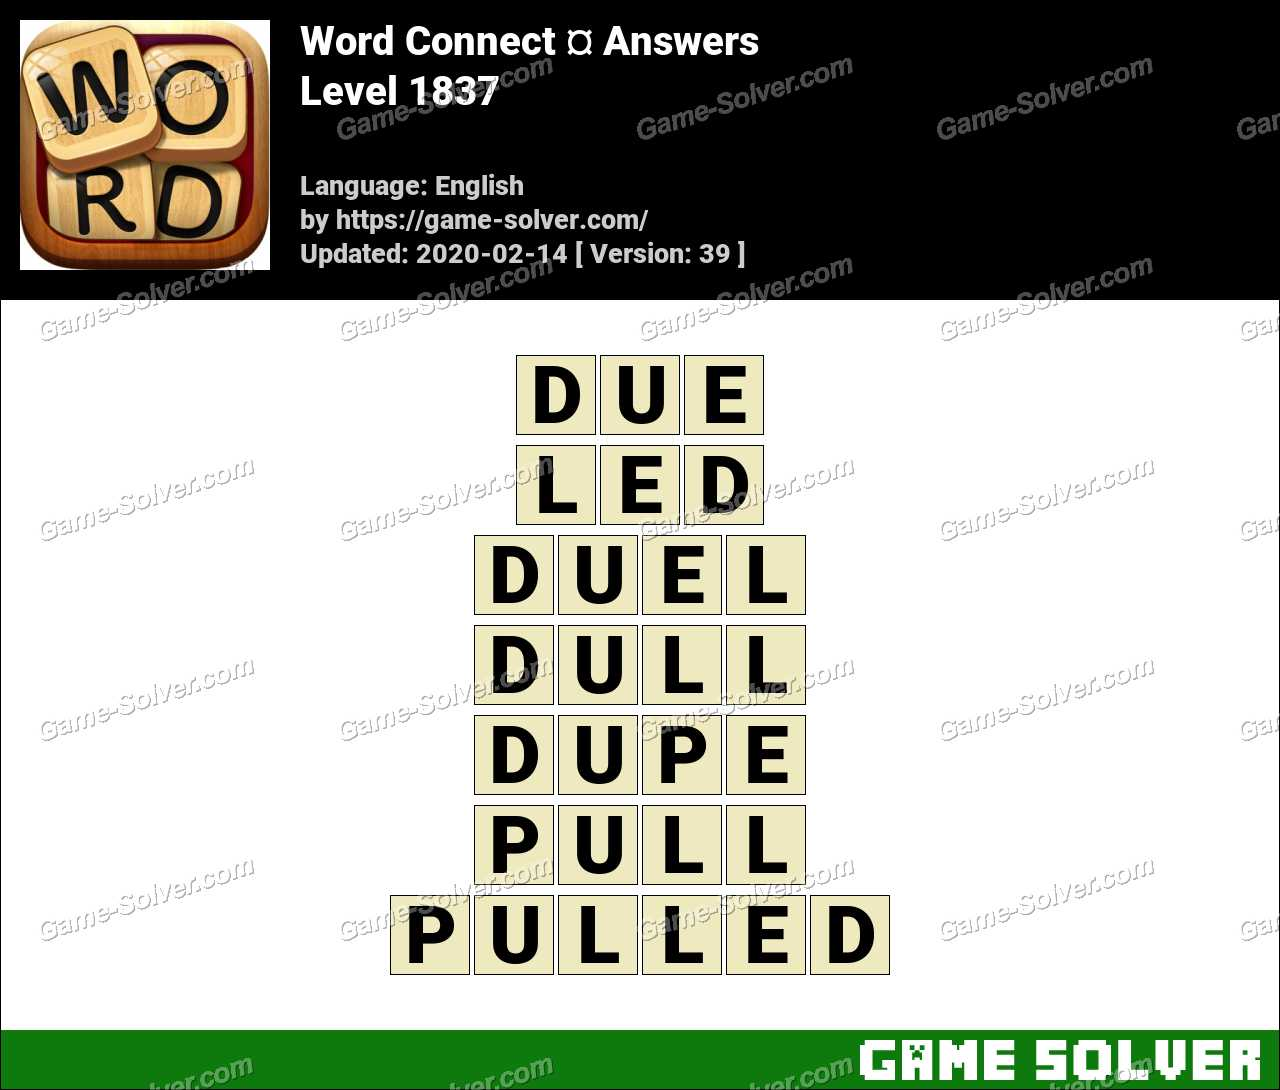 Word Connect Level 1837 Answers